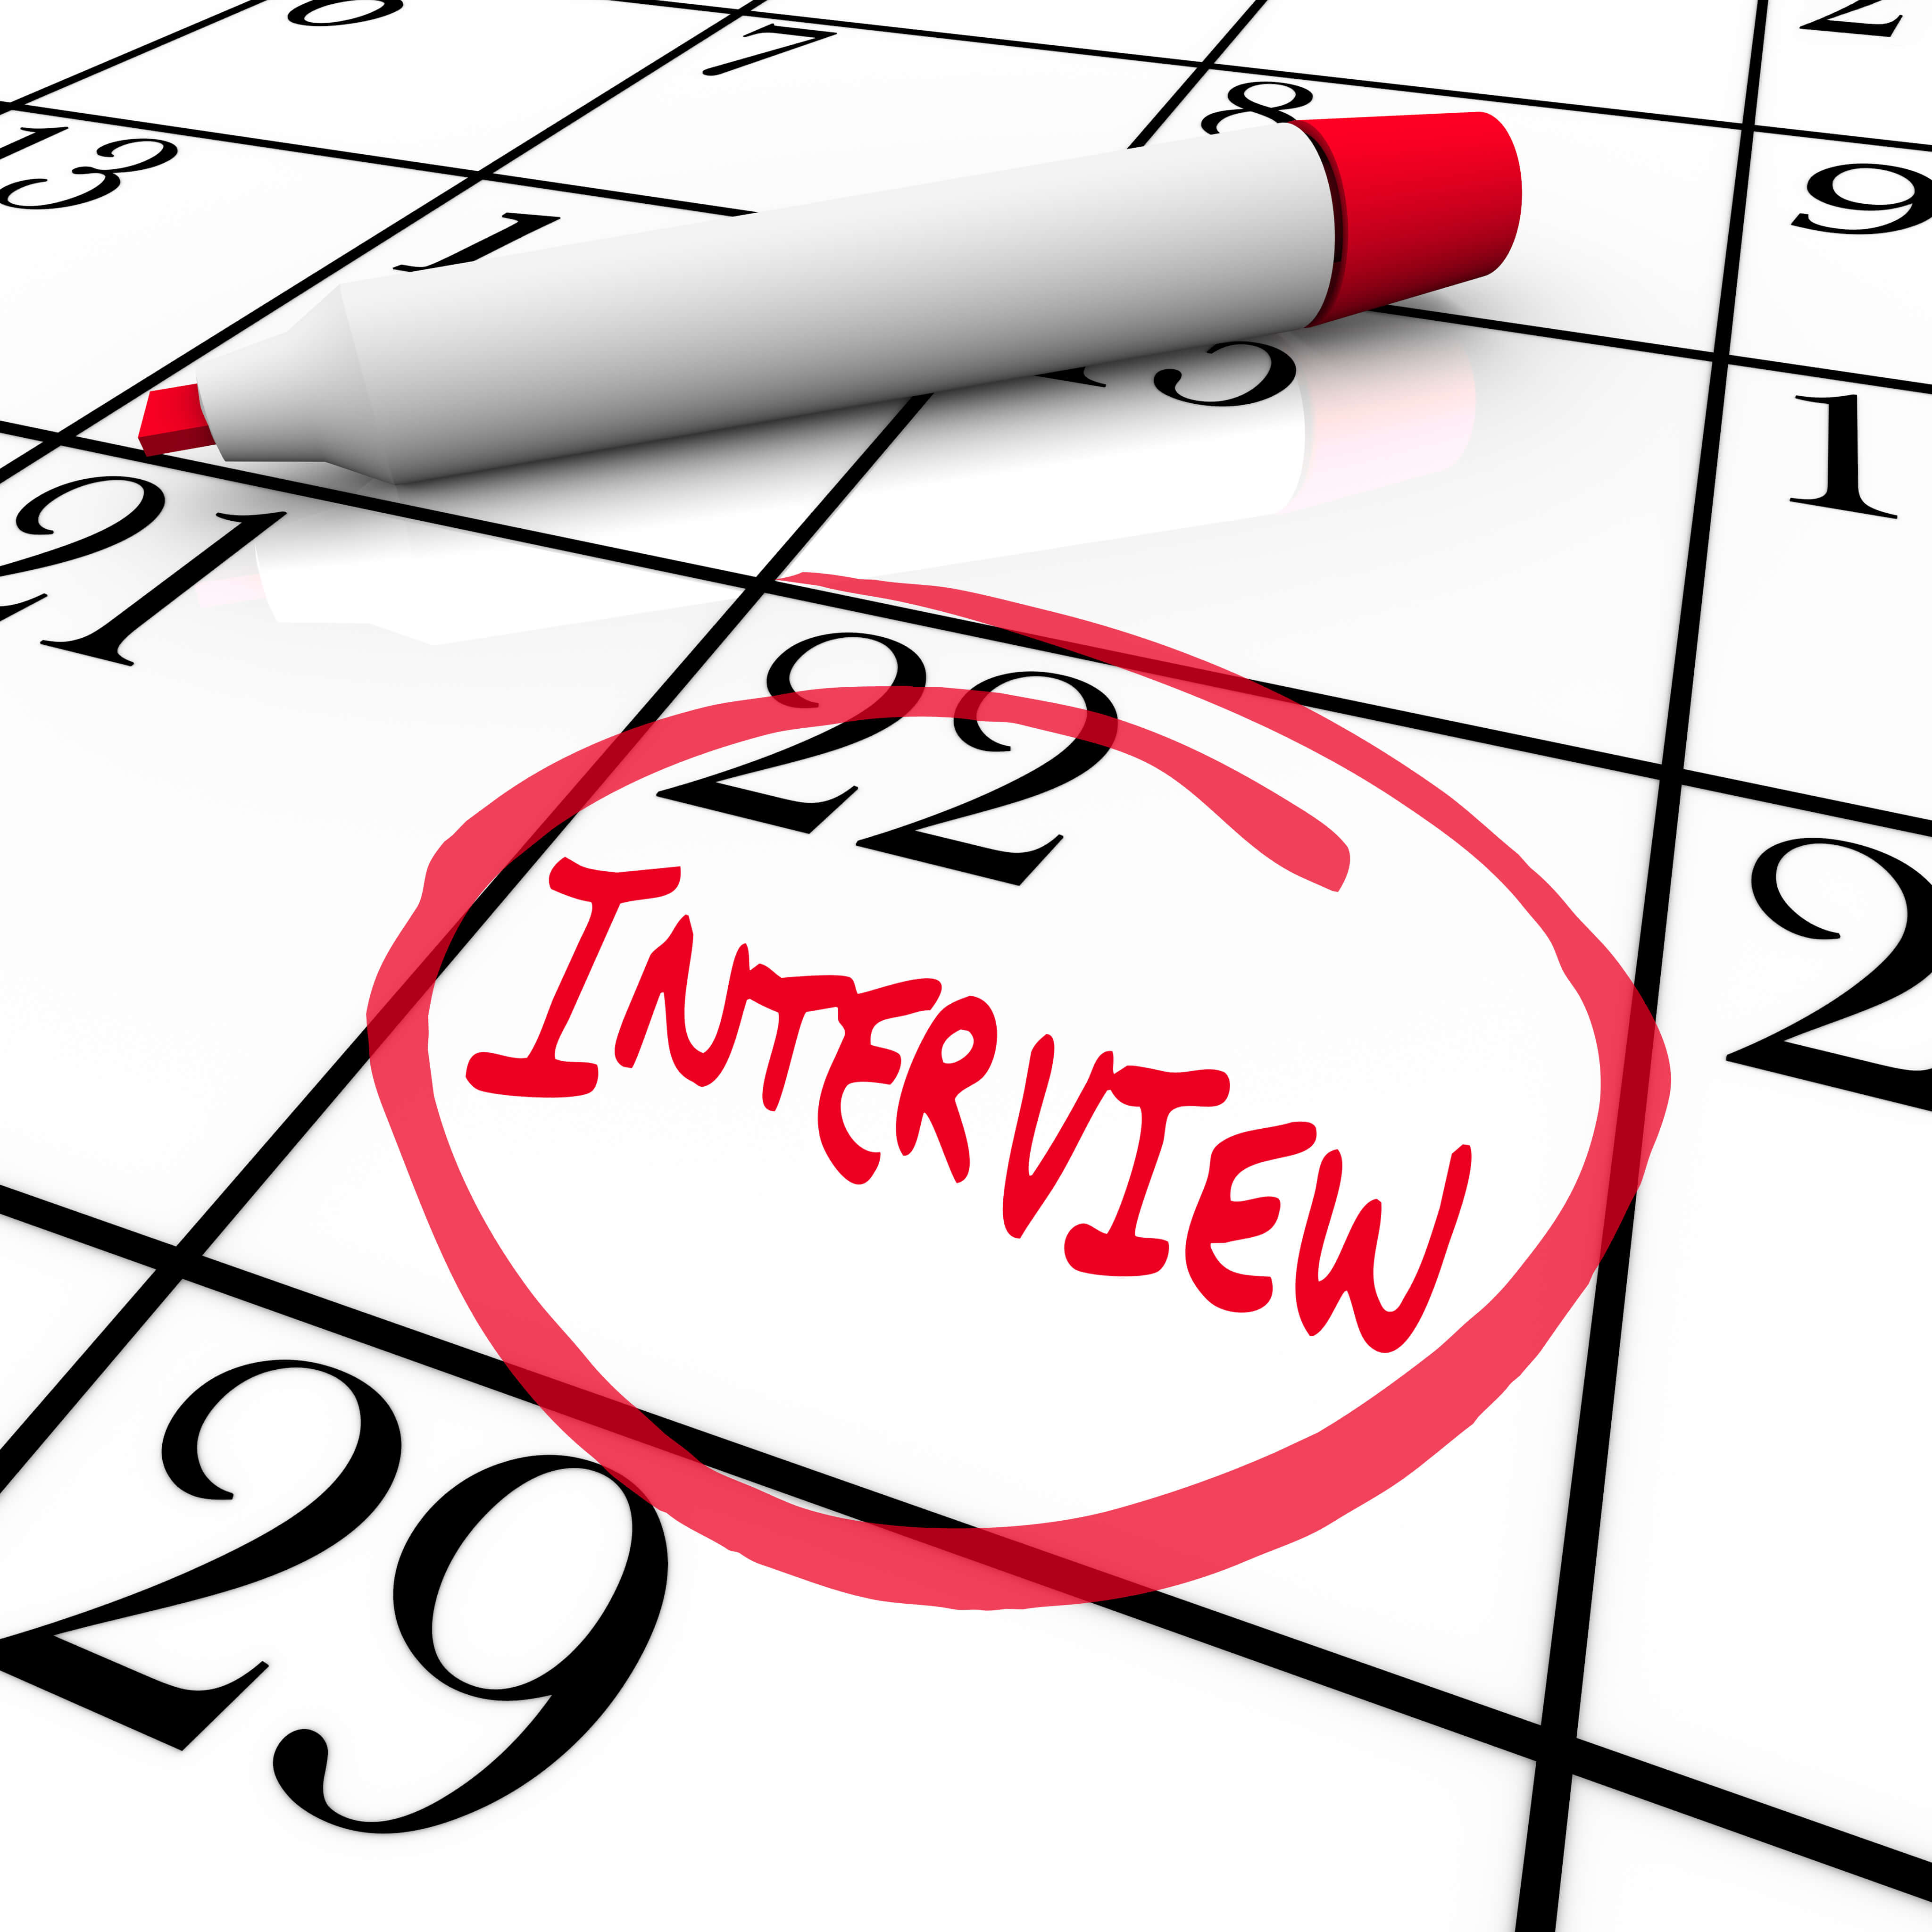 interview skills, career coach, job search